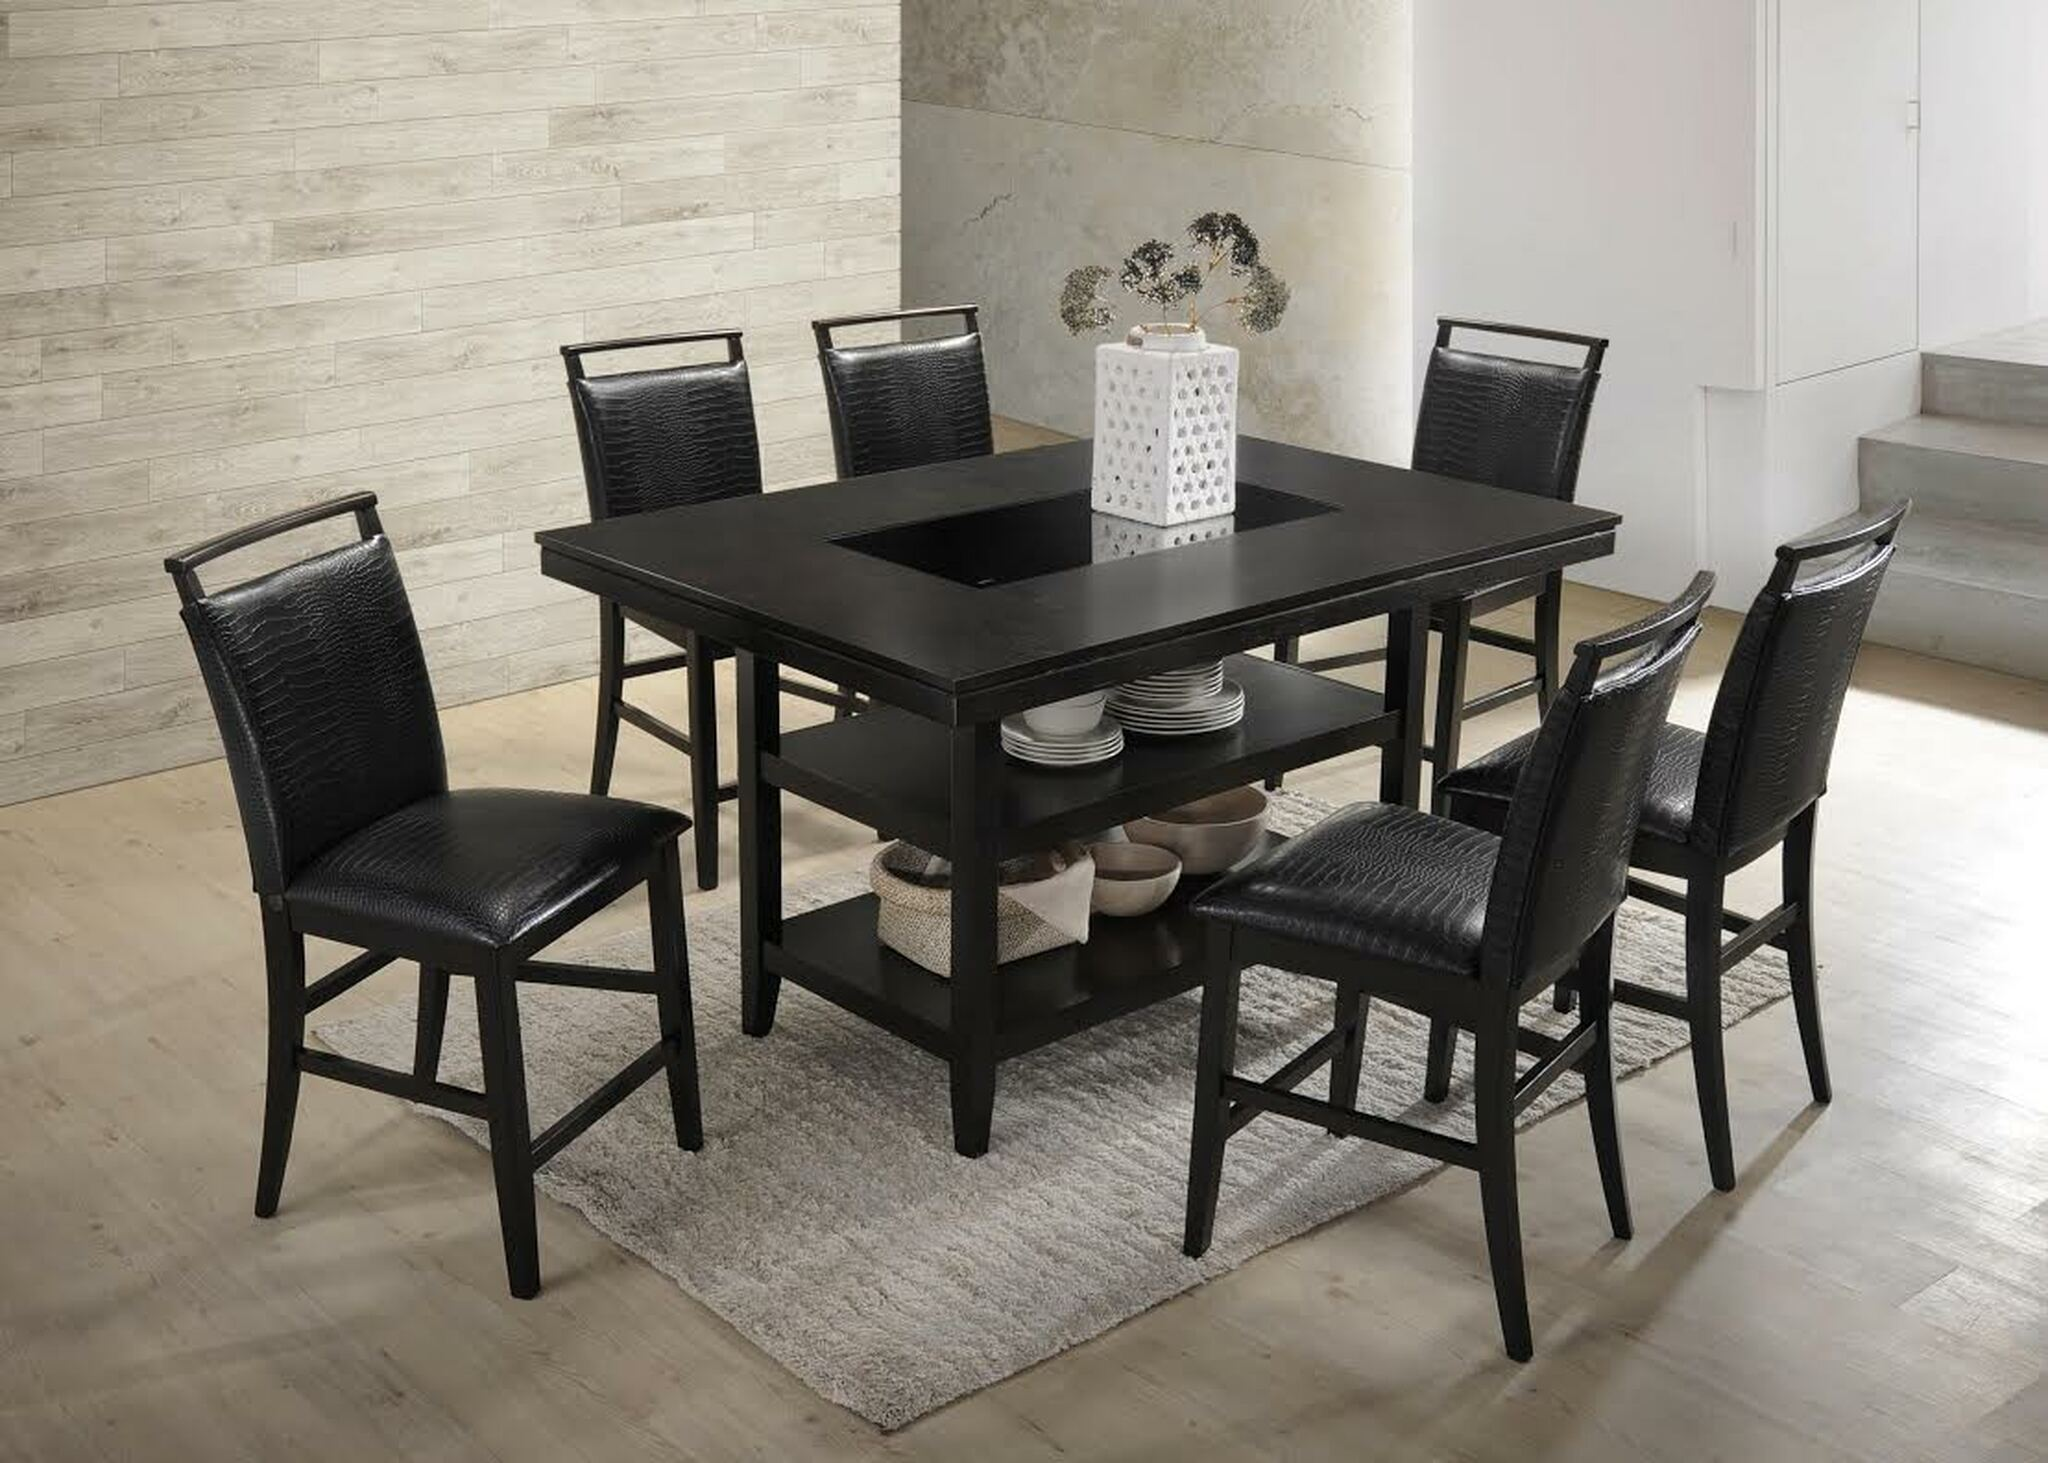 7pcs Black Counter Height Dining Table Set Black Crocodile Upholstery Km Home Furniture